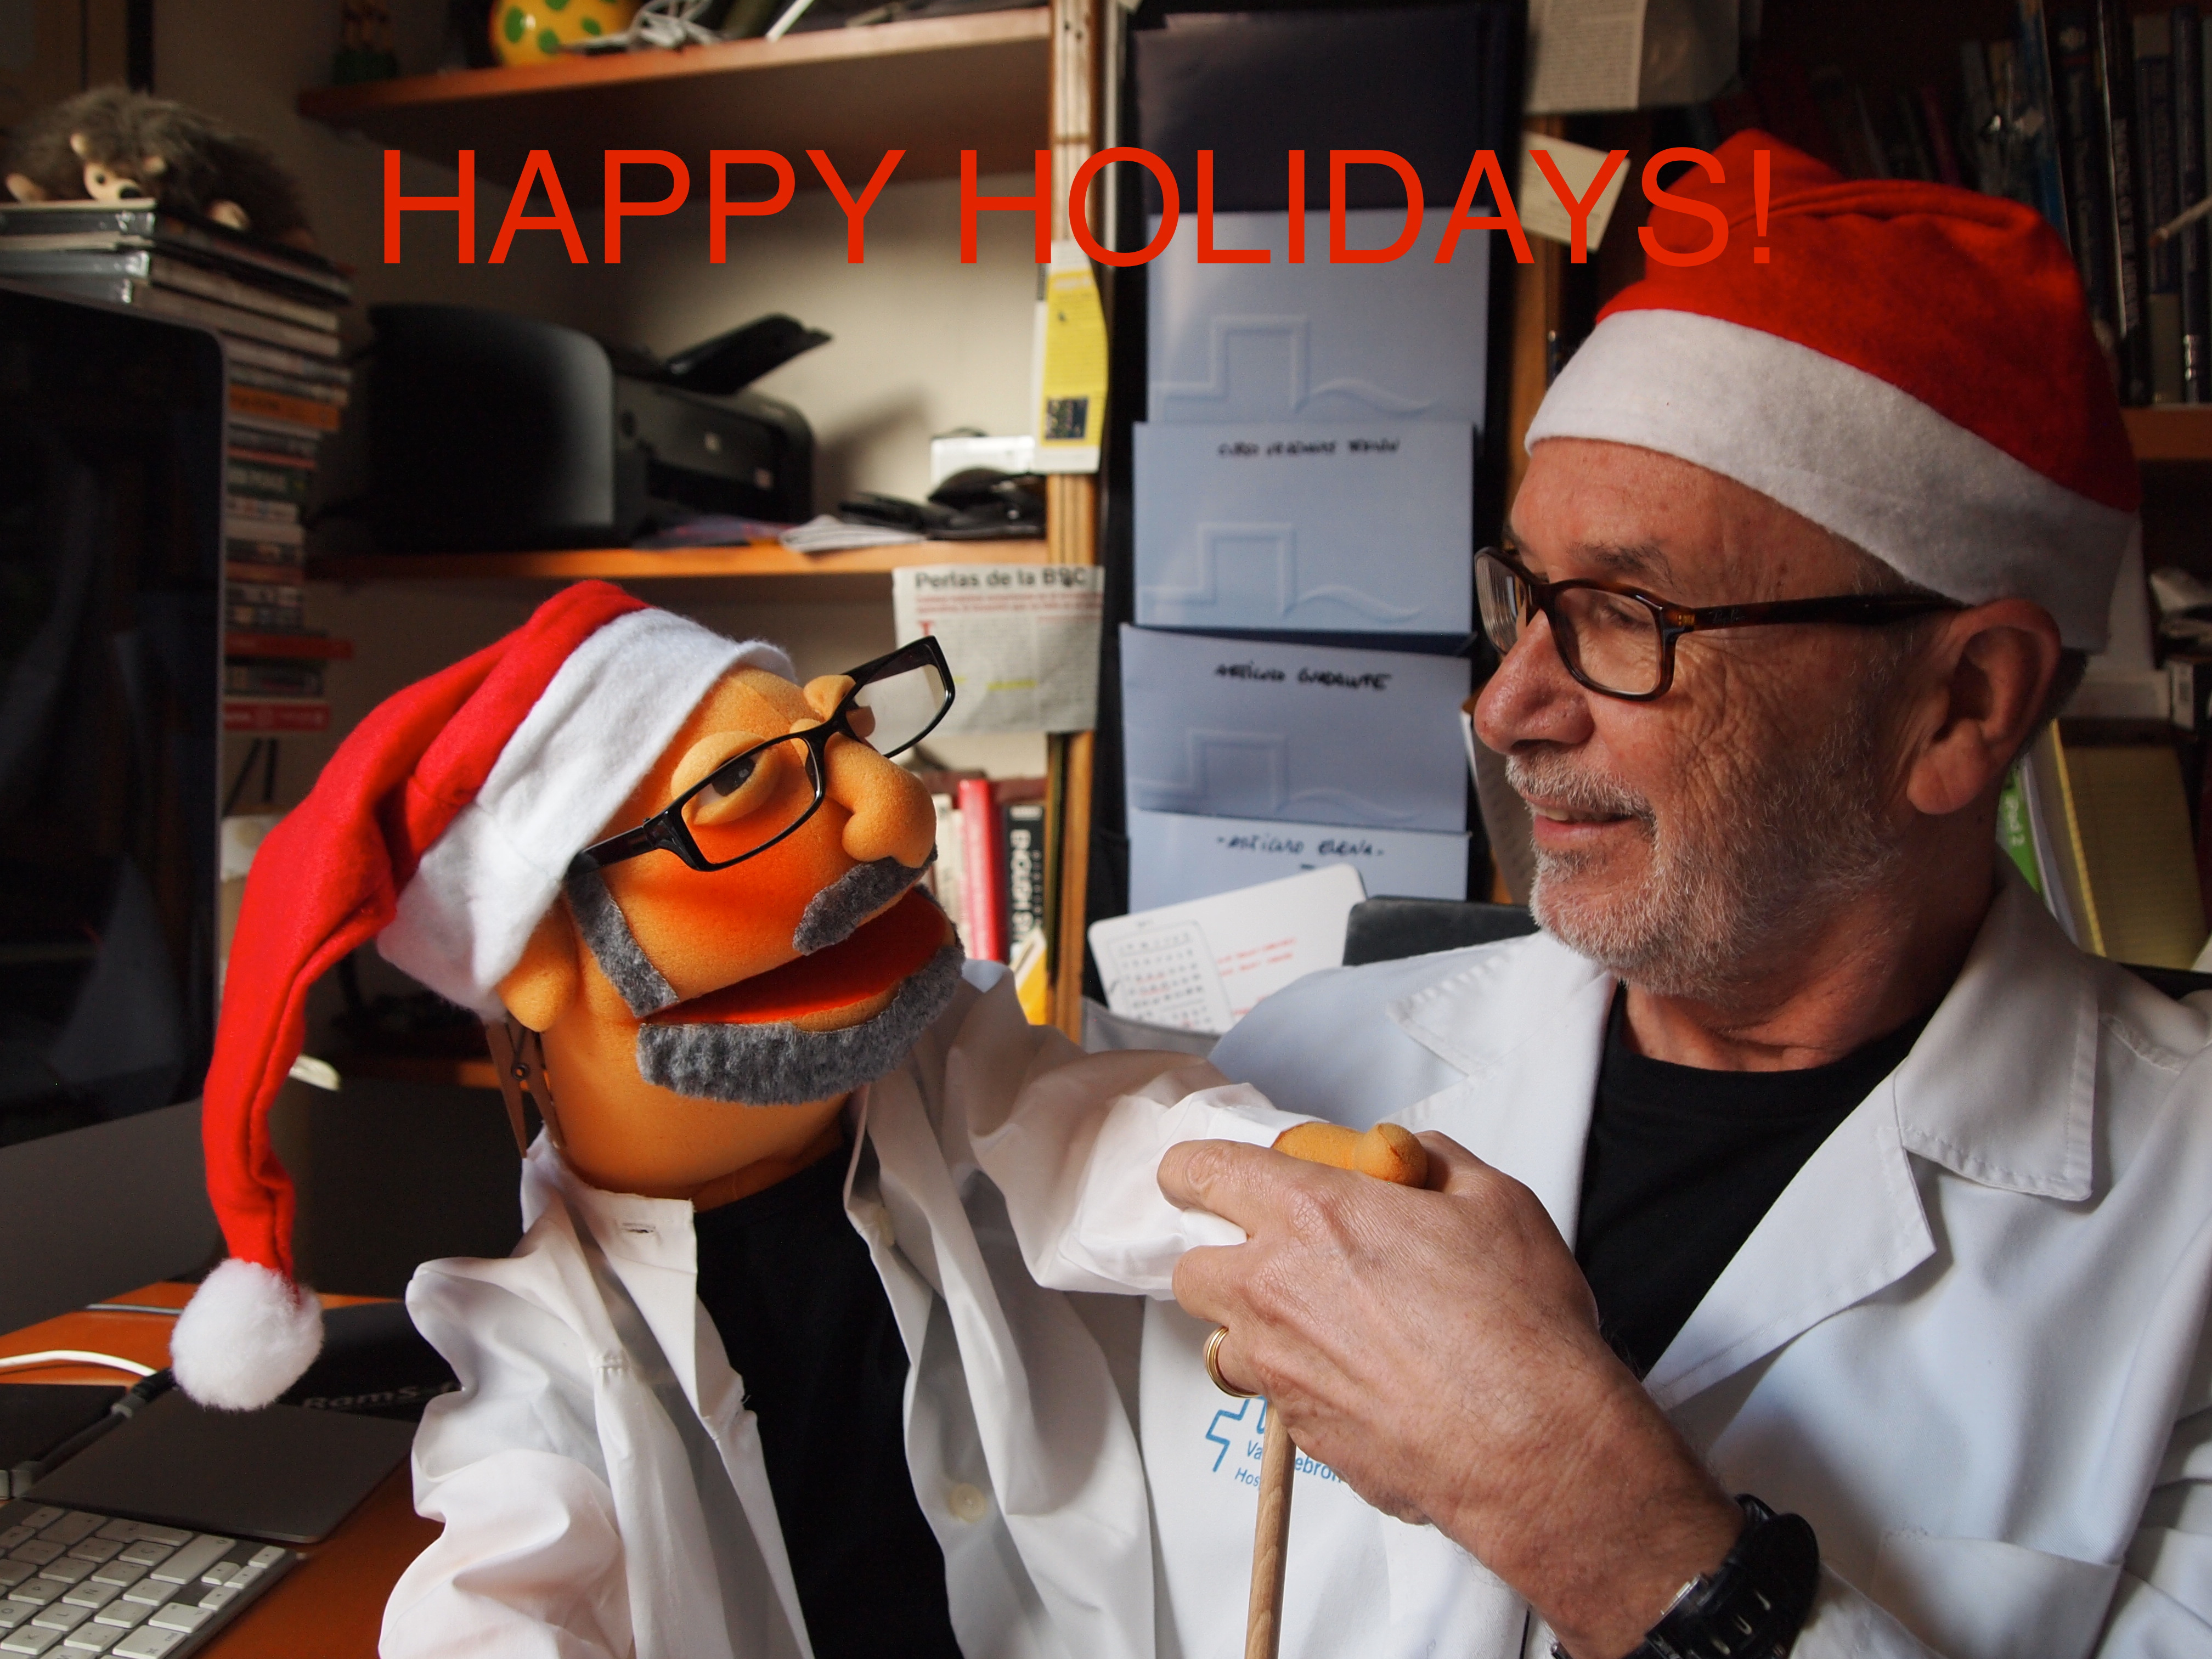 Happy Holidays from Prof. Cáceres and Dr. Pepe